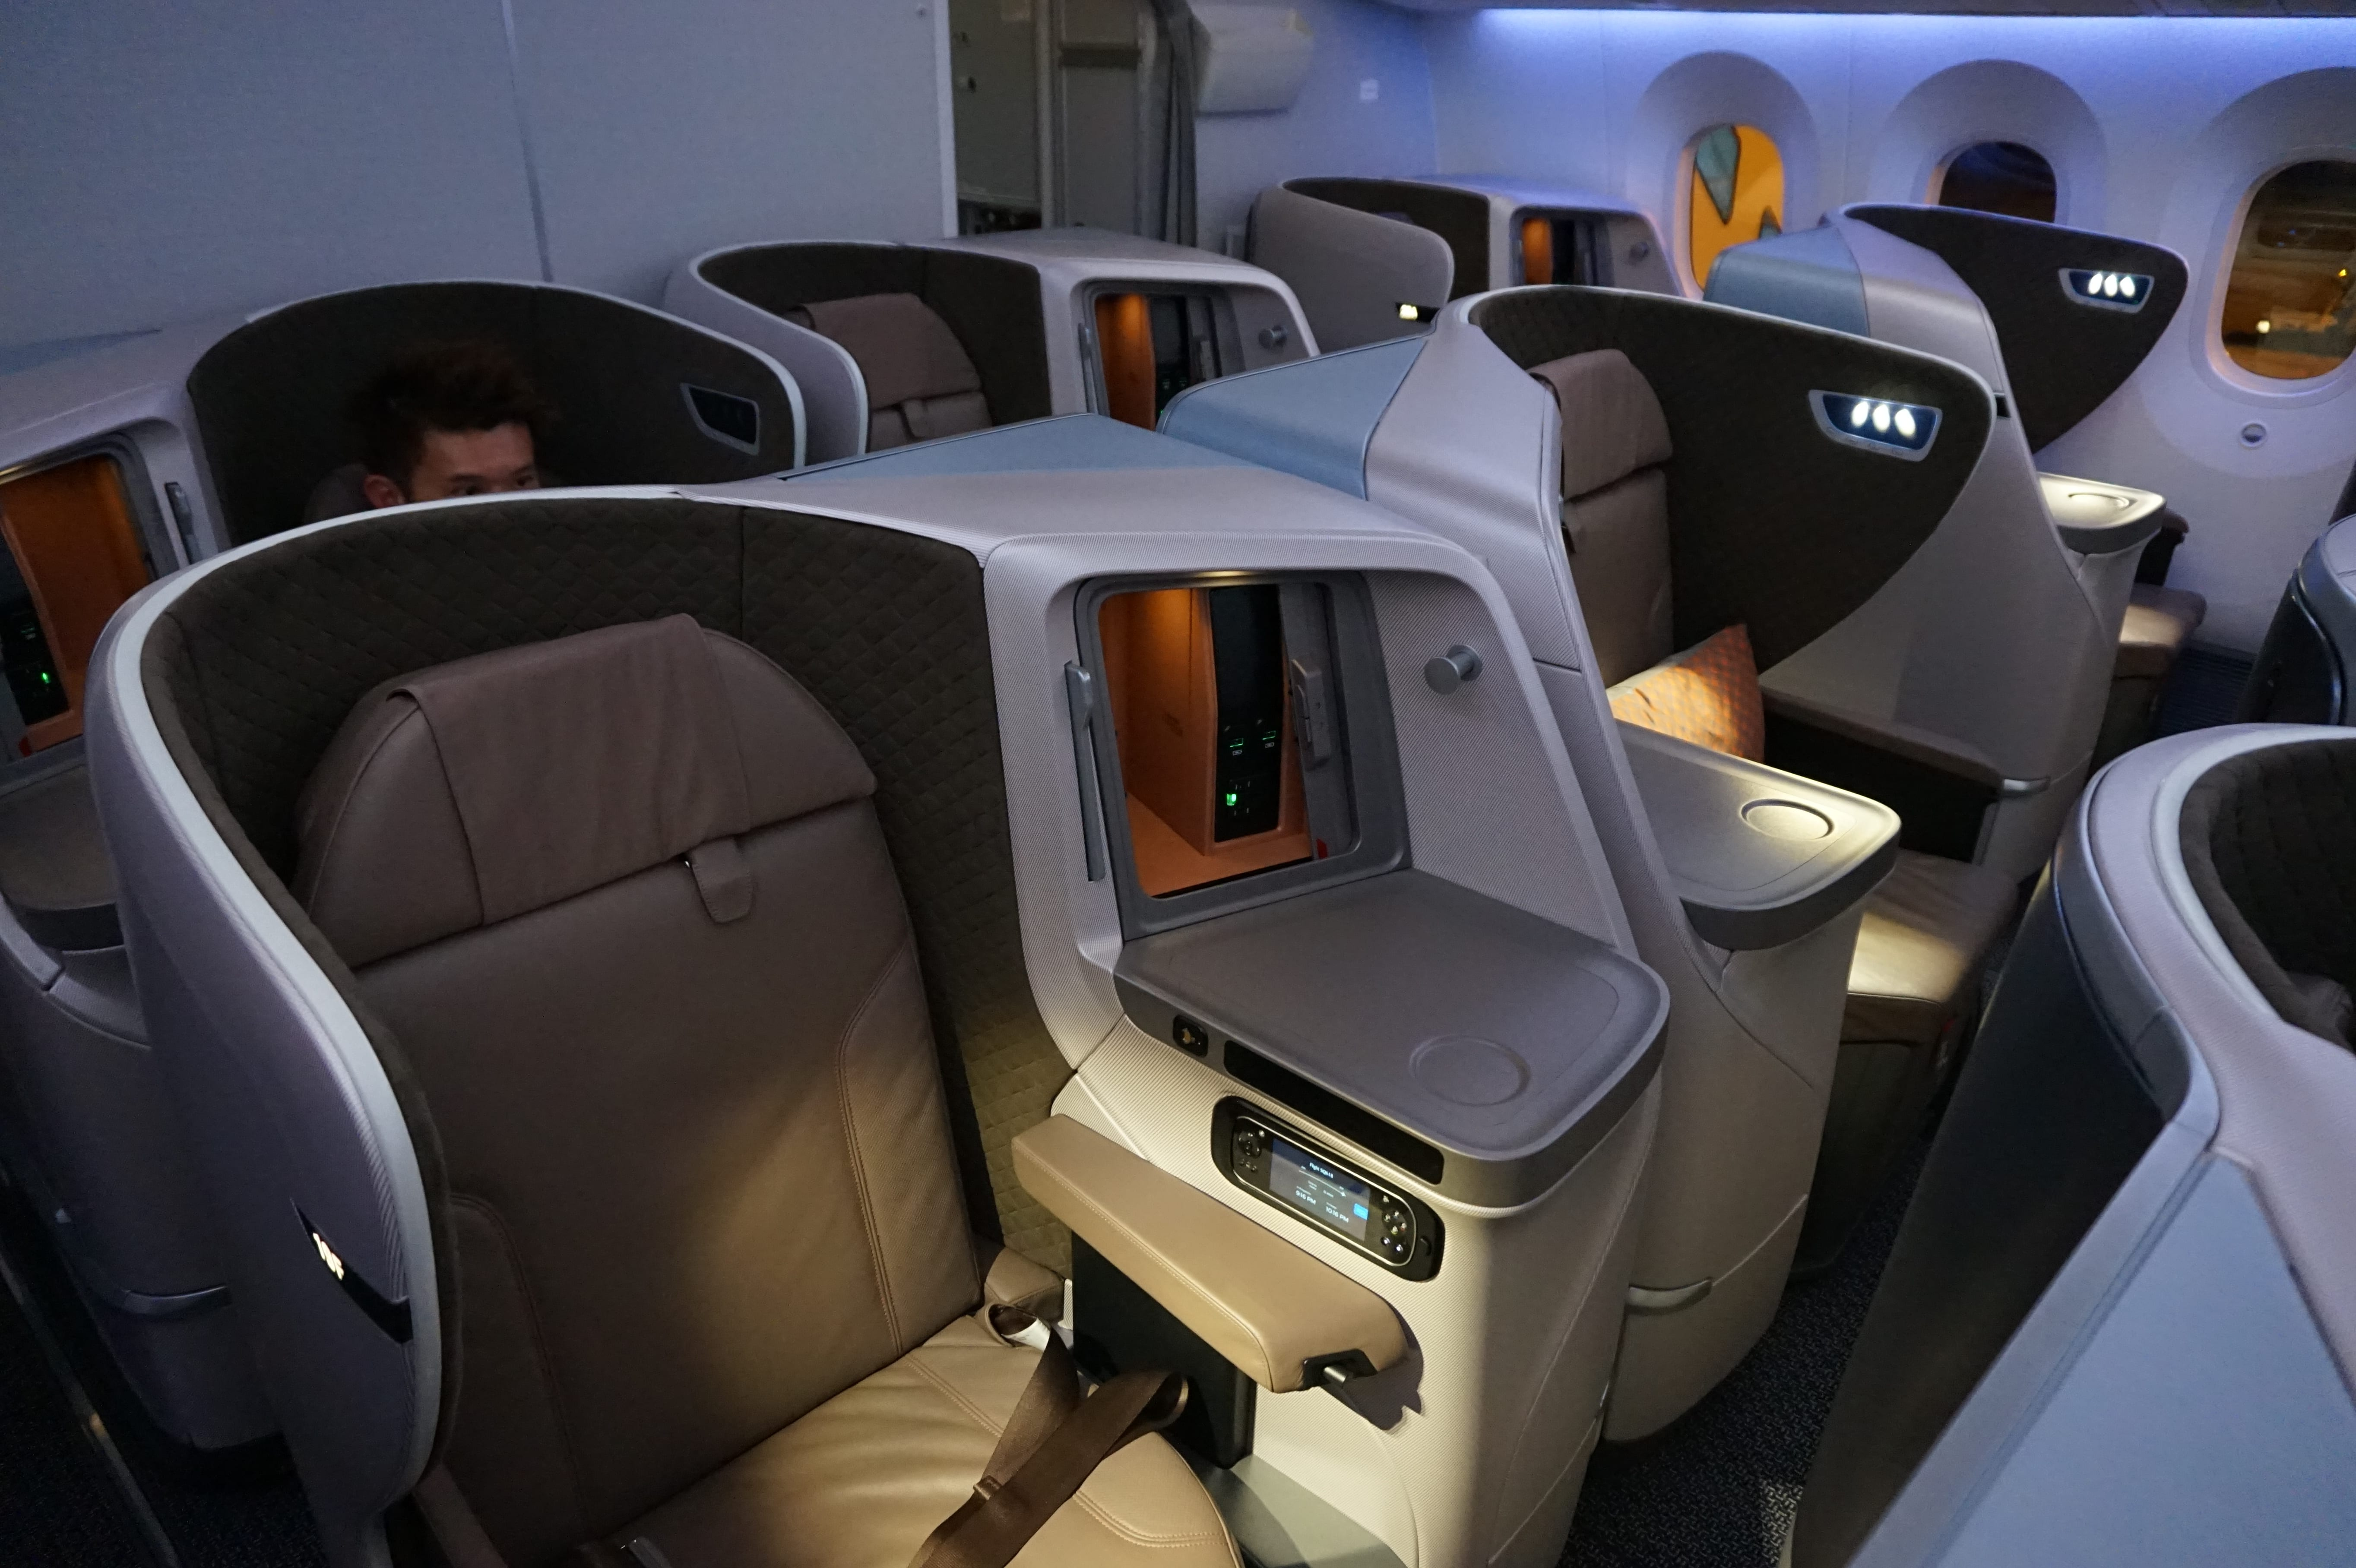 Singapore Airlines will fly its first regional A350-900 this month ...